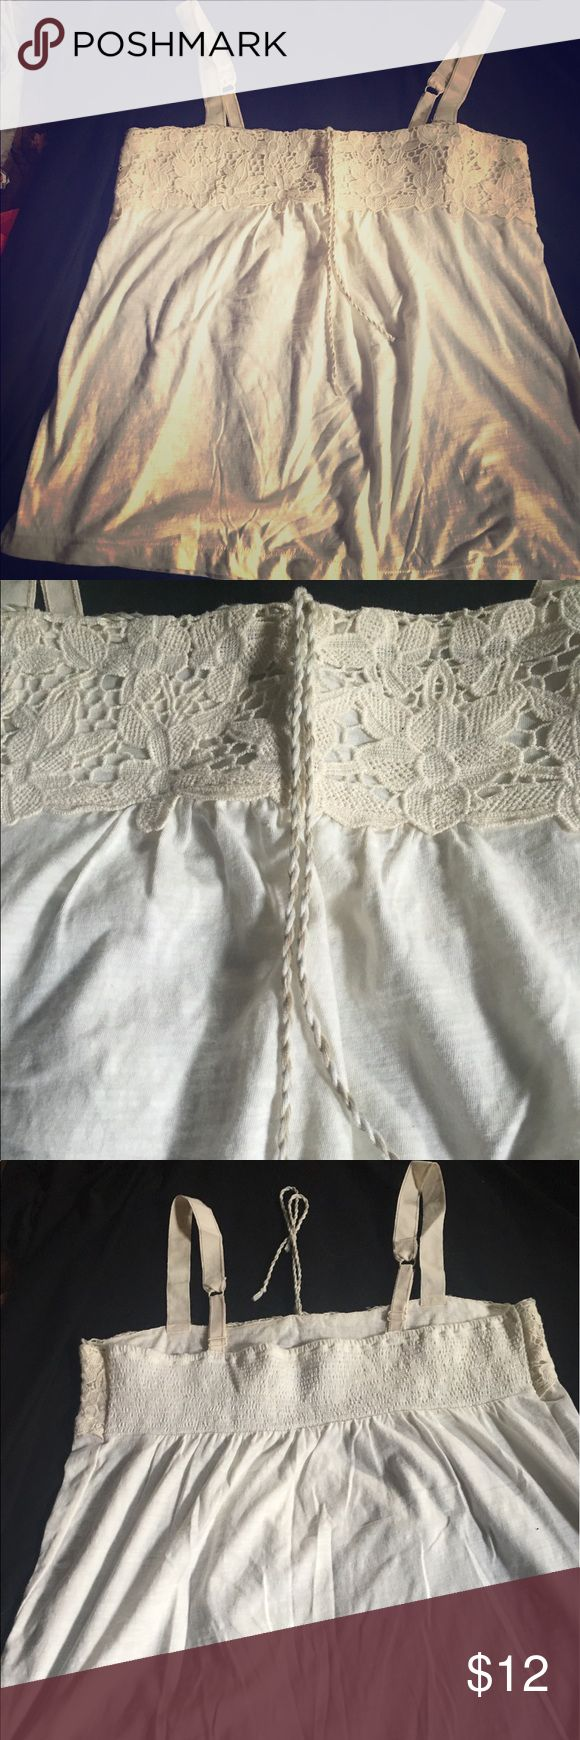 American Eagle Cream Cami w/lace SZ large Cute summer American Eagle cream Cami with adjustable straps. Fabric is cotton, adjustable straps, smoke free home. American Eagle Outfitters Tops Camisoles